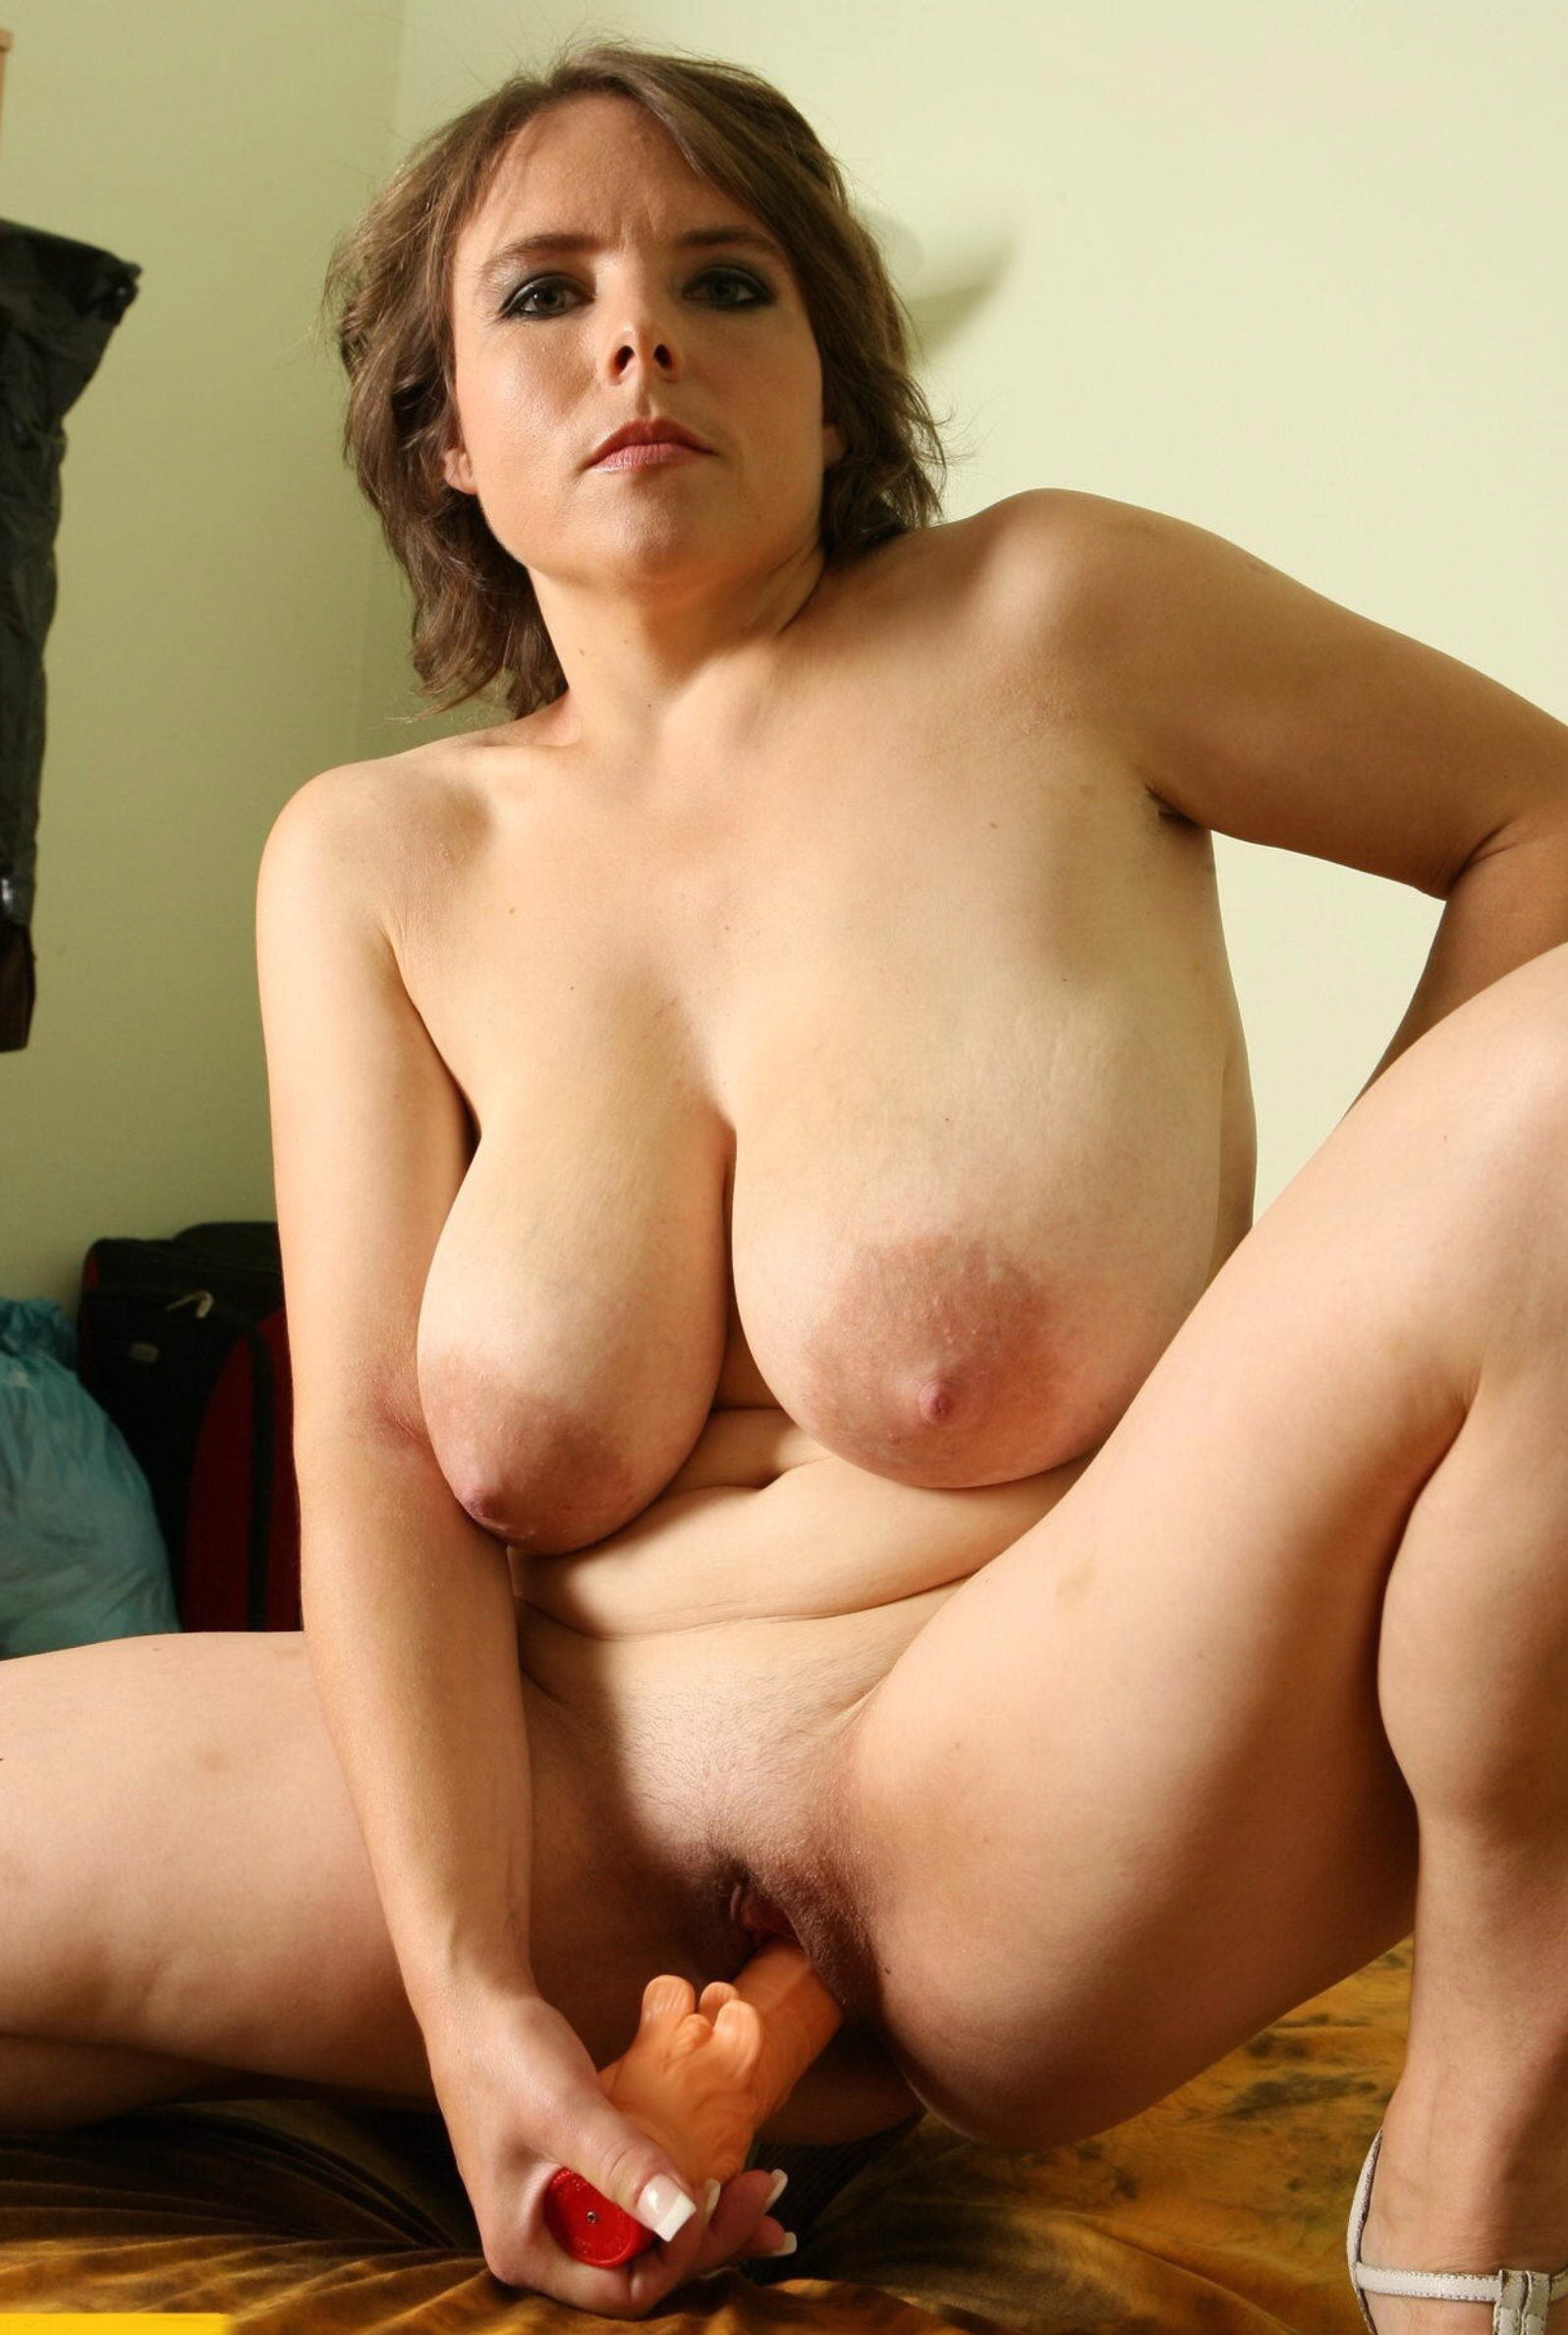 Gorgeous mother with perfect big breasts